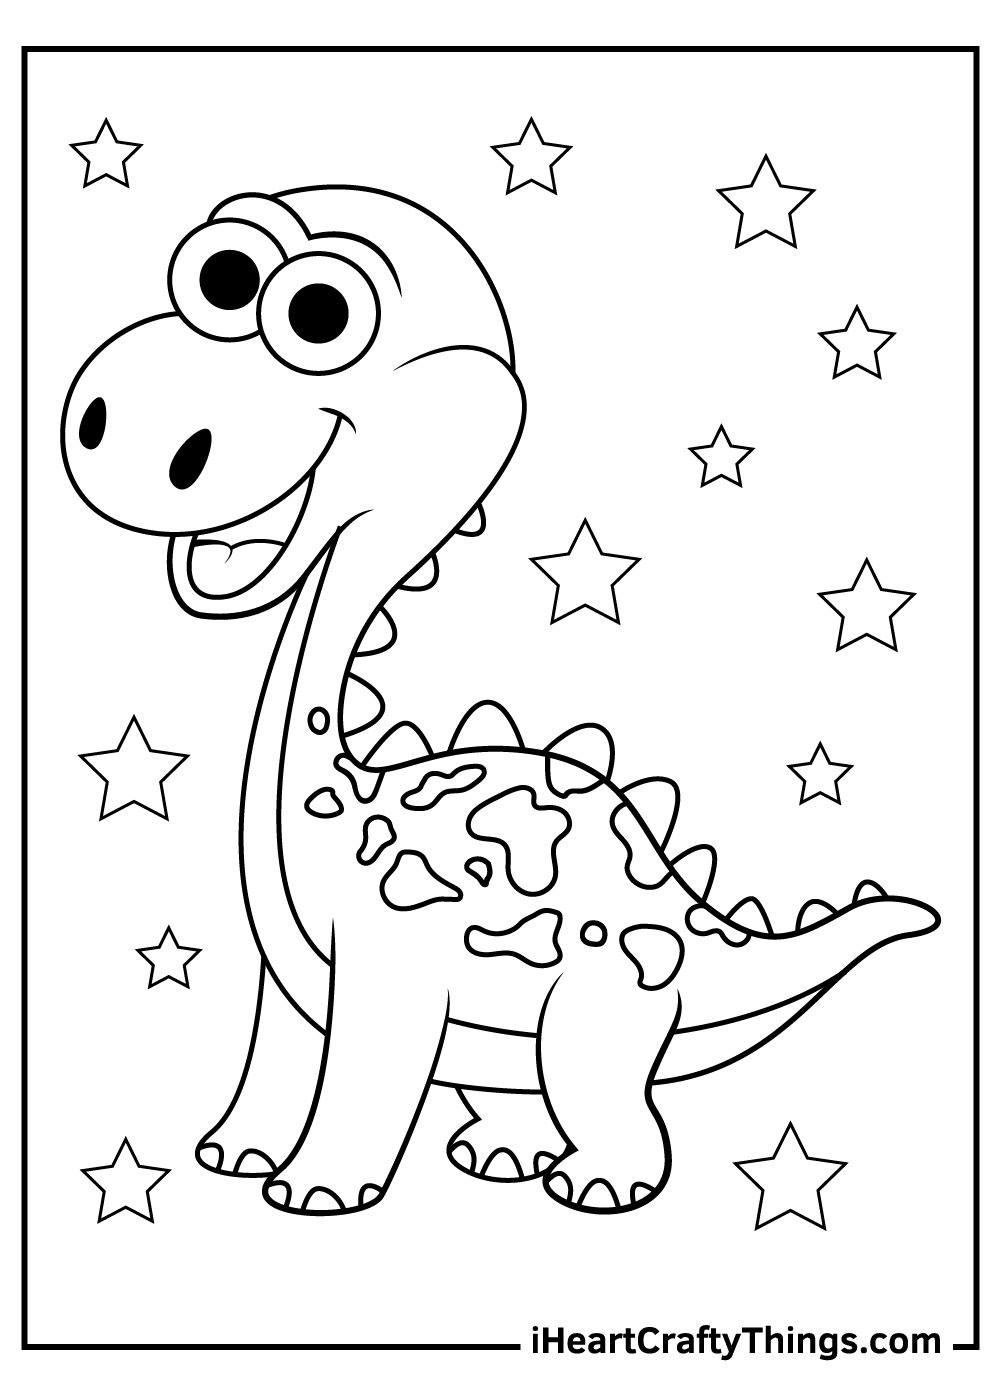 cute dinosaurs coloring updated baby dinosaur crayola watercolor paint for little kids coloring pages Baby Dinosaur Coloring Page